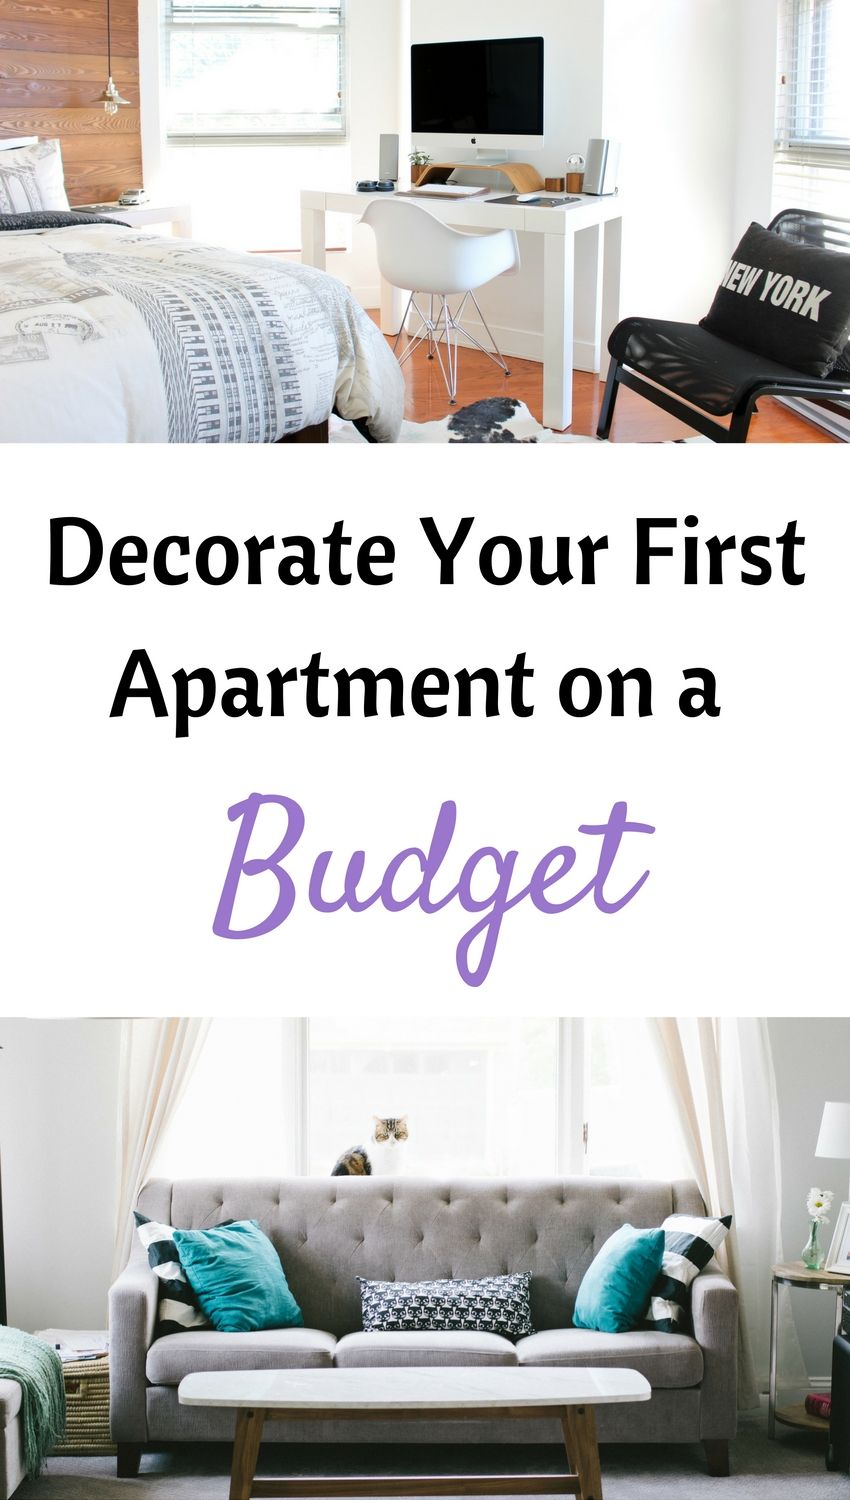 How To Decorate Your First Apartment On A Budget With Images